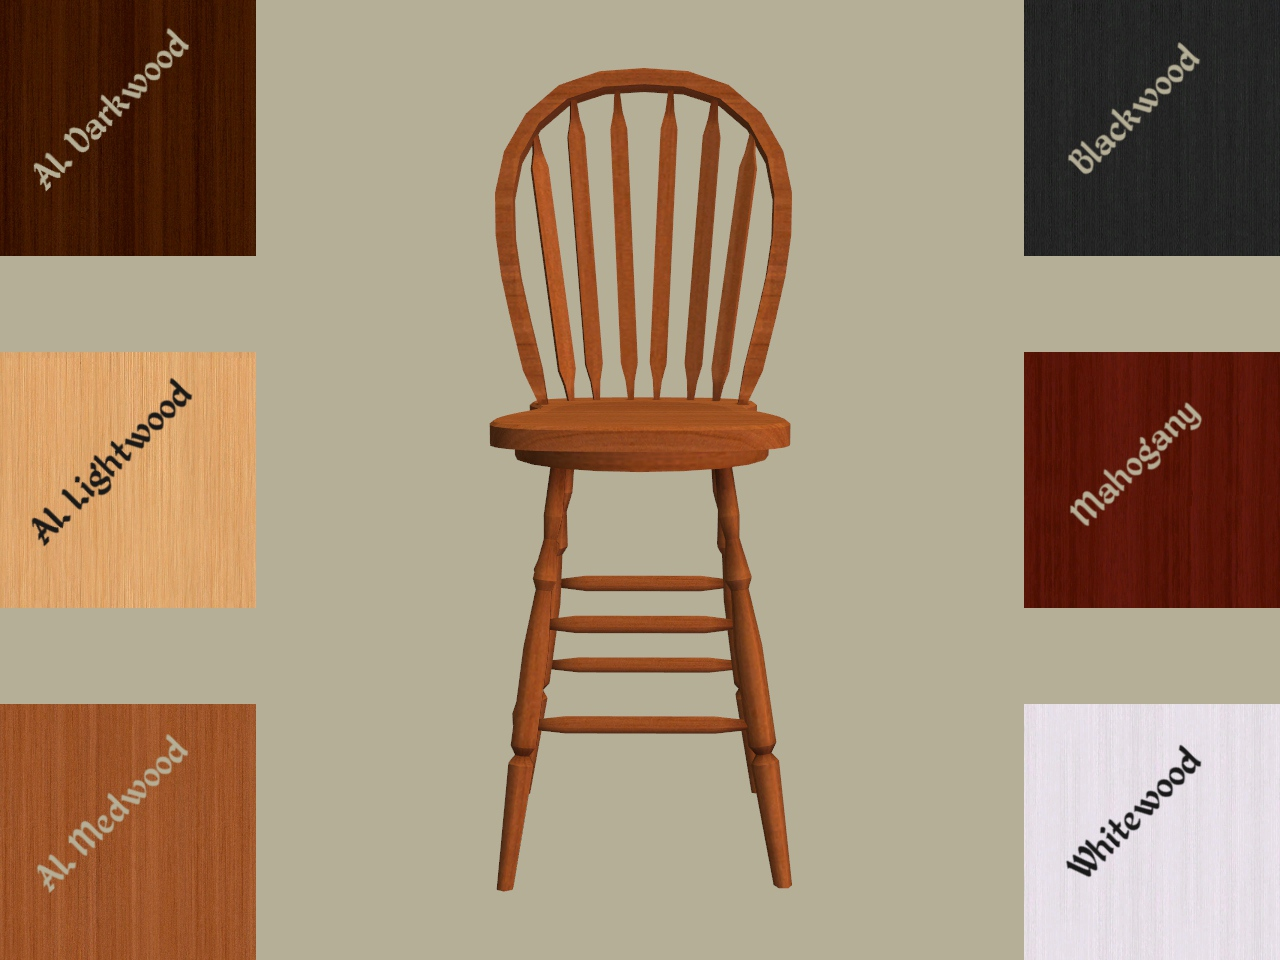 Mod The Sims Base Game Bar Stool Recolours : MTSMichelle111 1362794 Ad A QuaintBarstoolSwatches from www.modthesims.info size 1280 x 960 jpeg 229kB